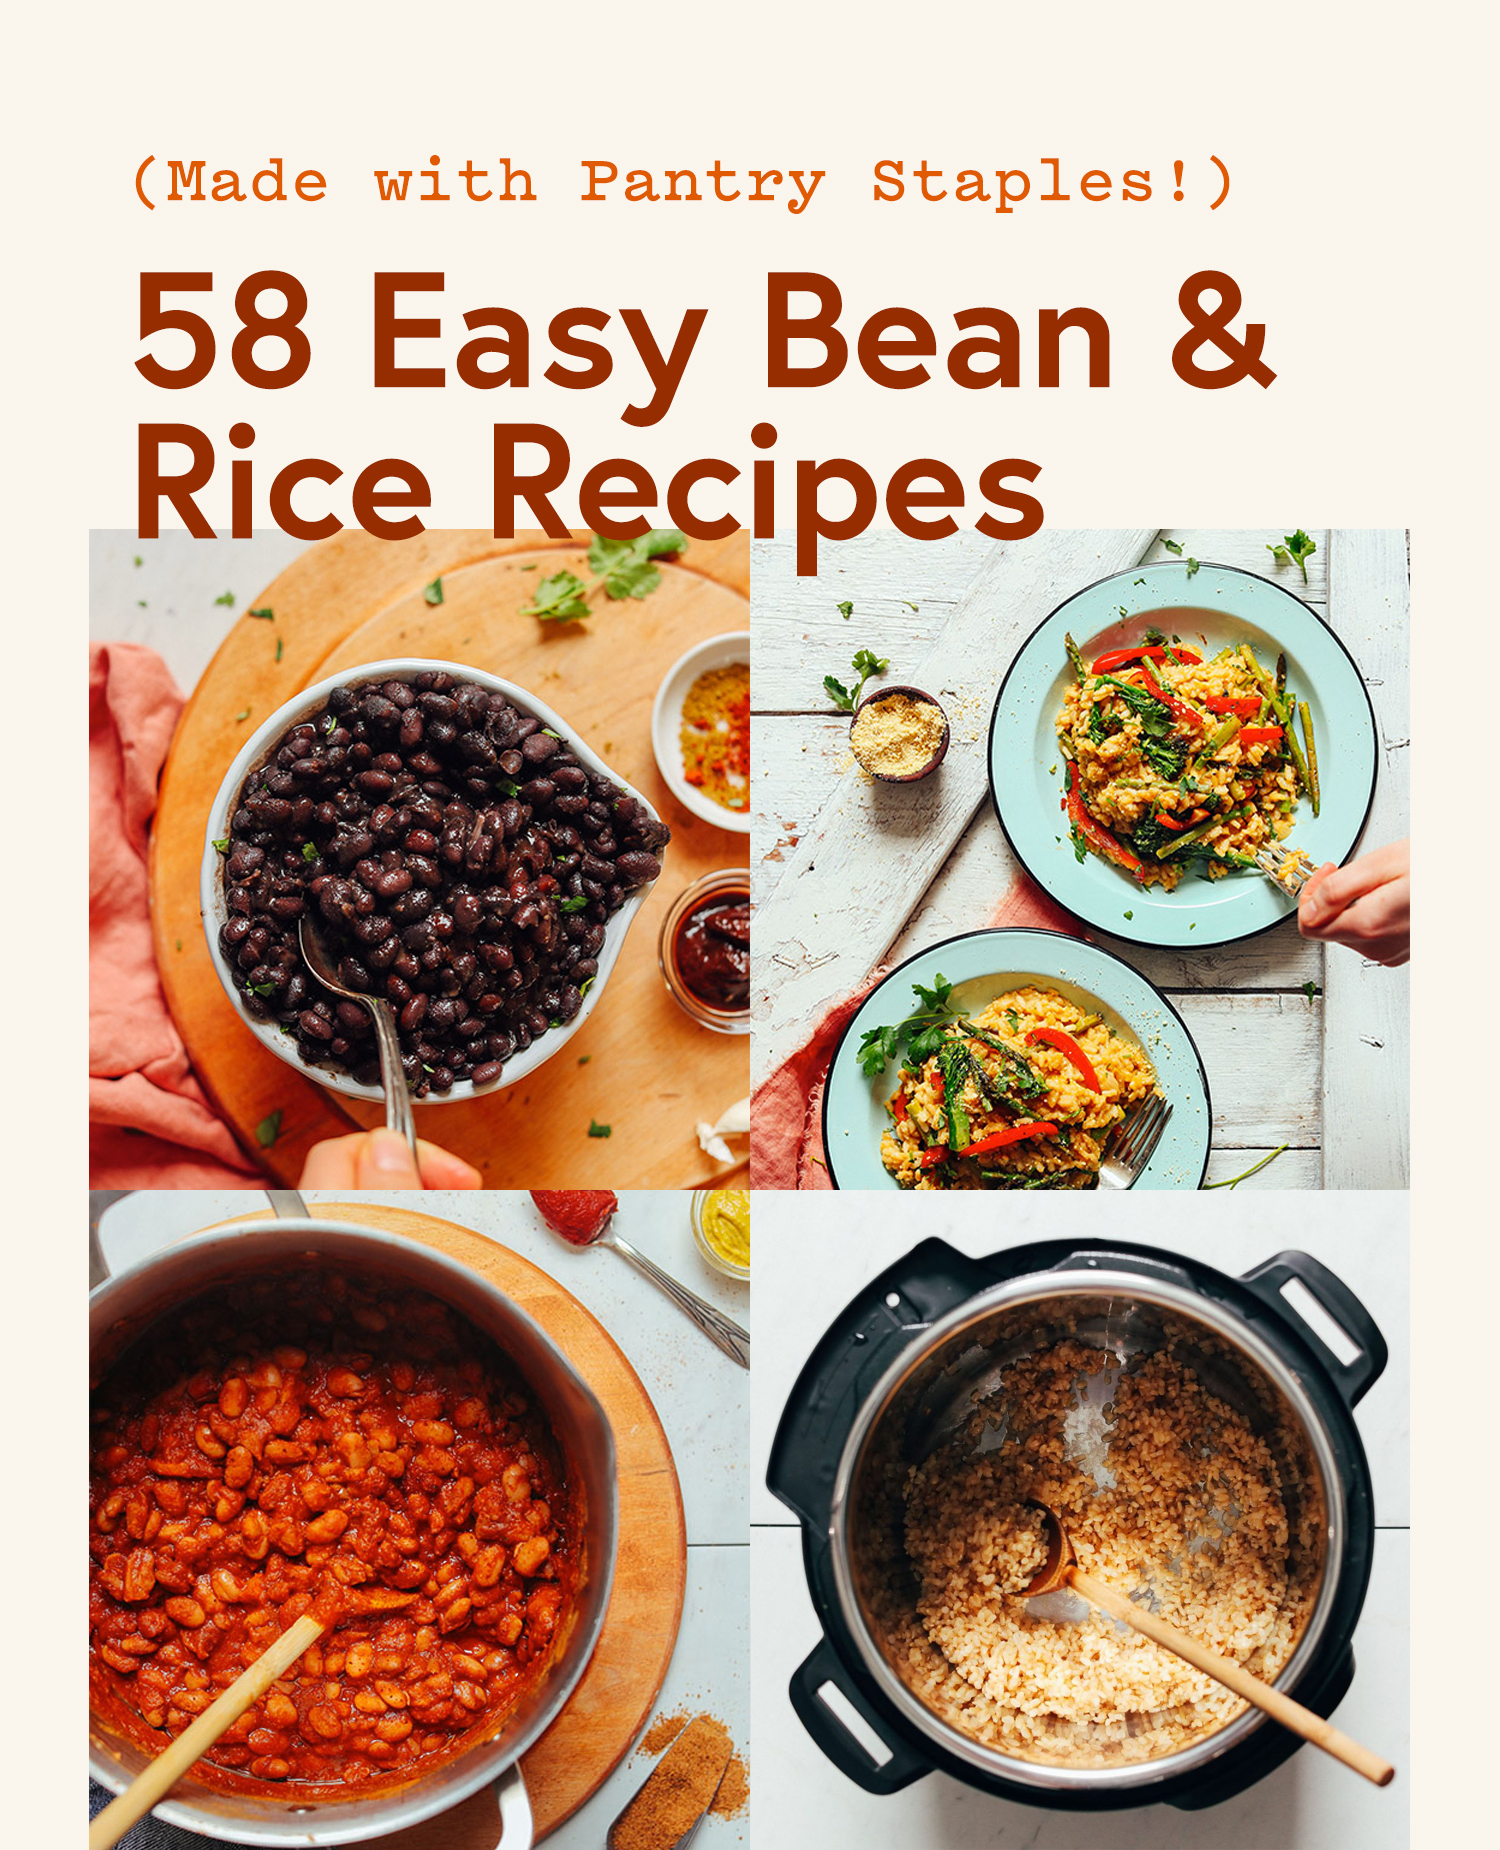 Bowls of black beans, risotto, BBQ Beans, and brown rice